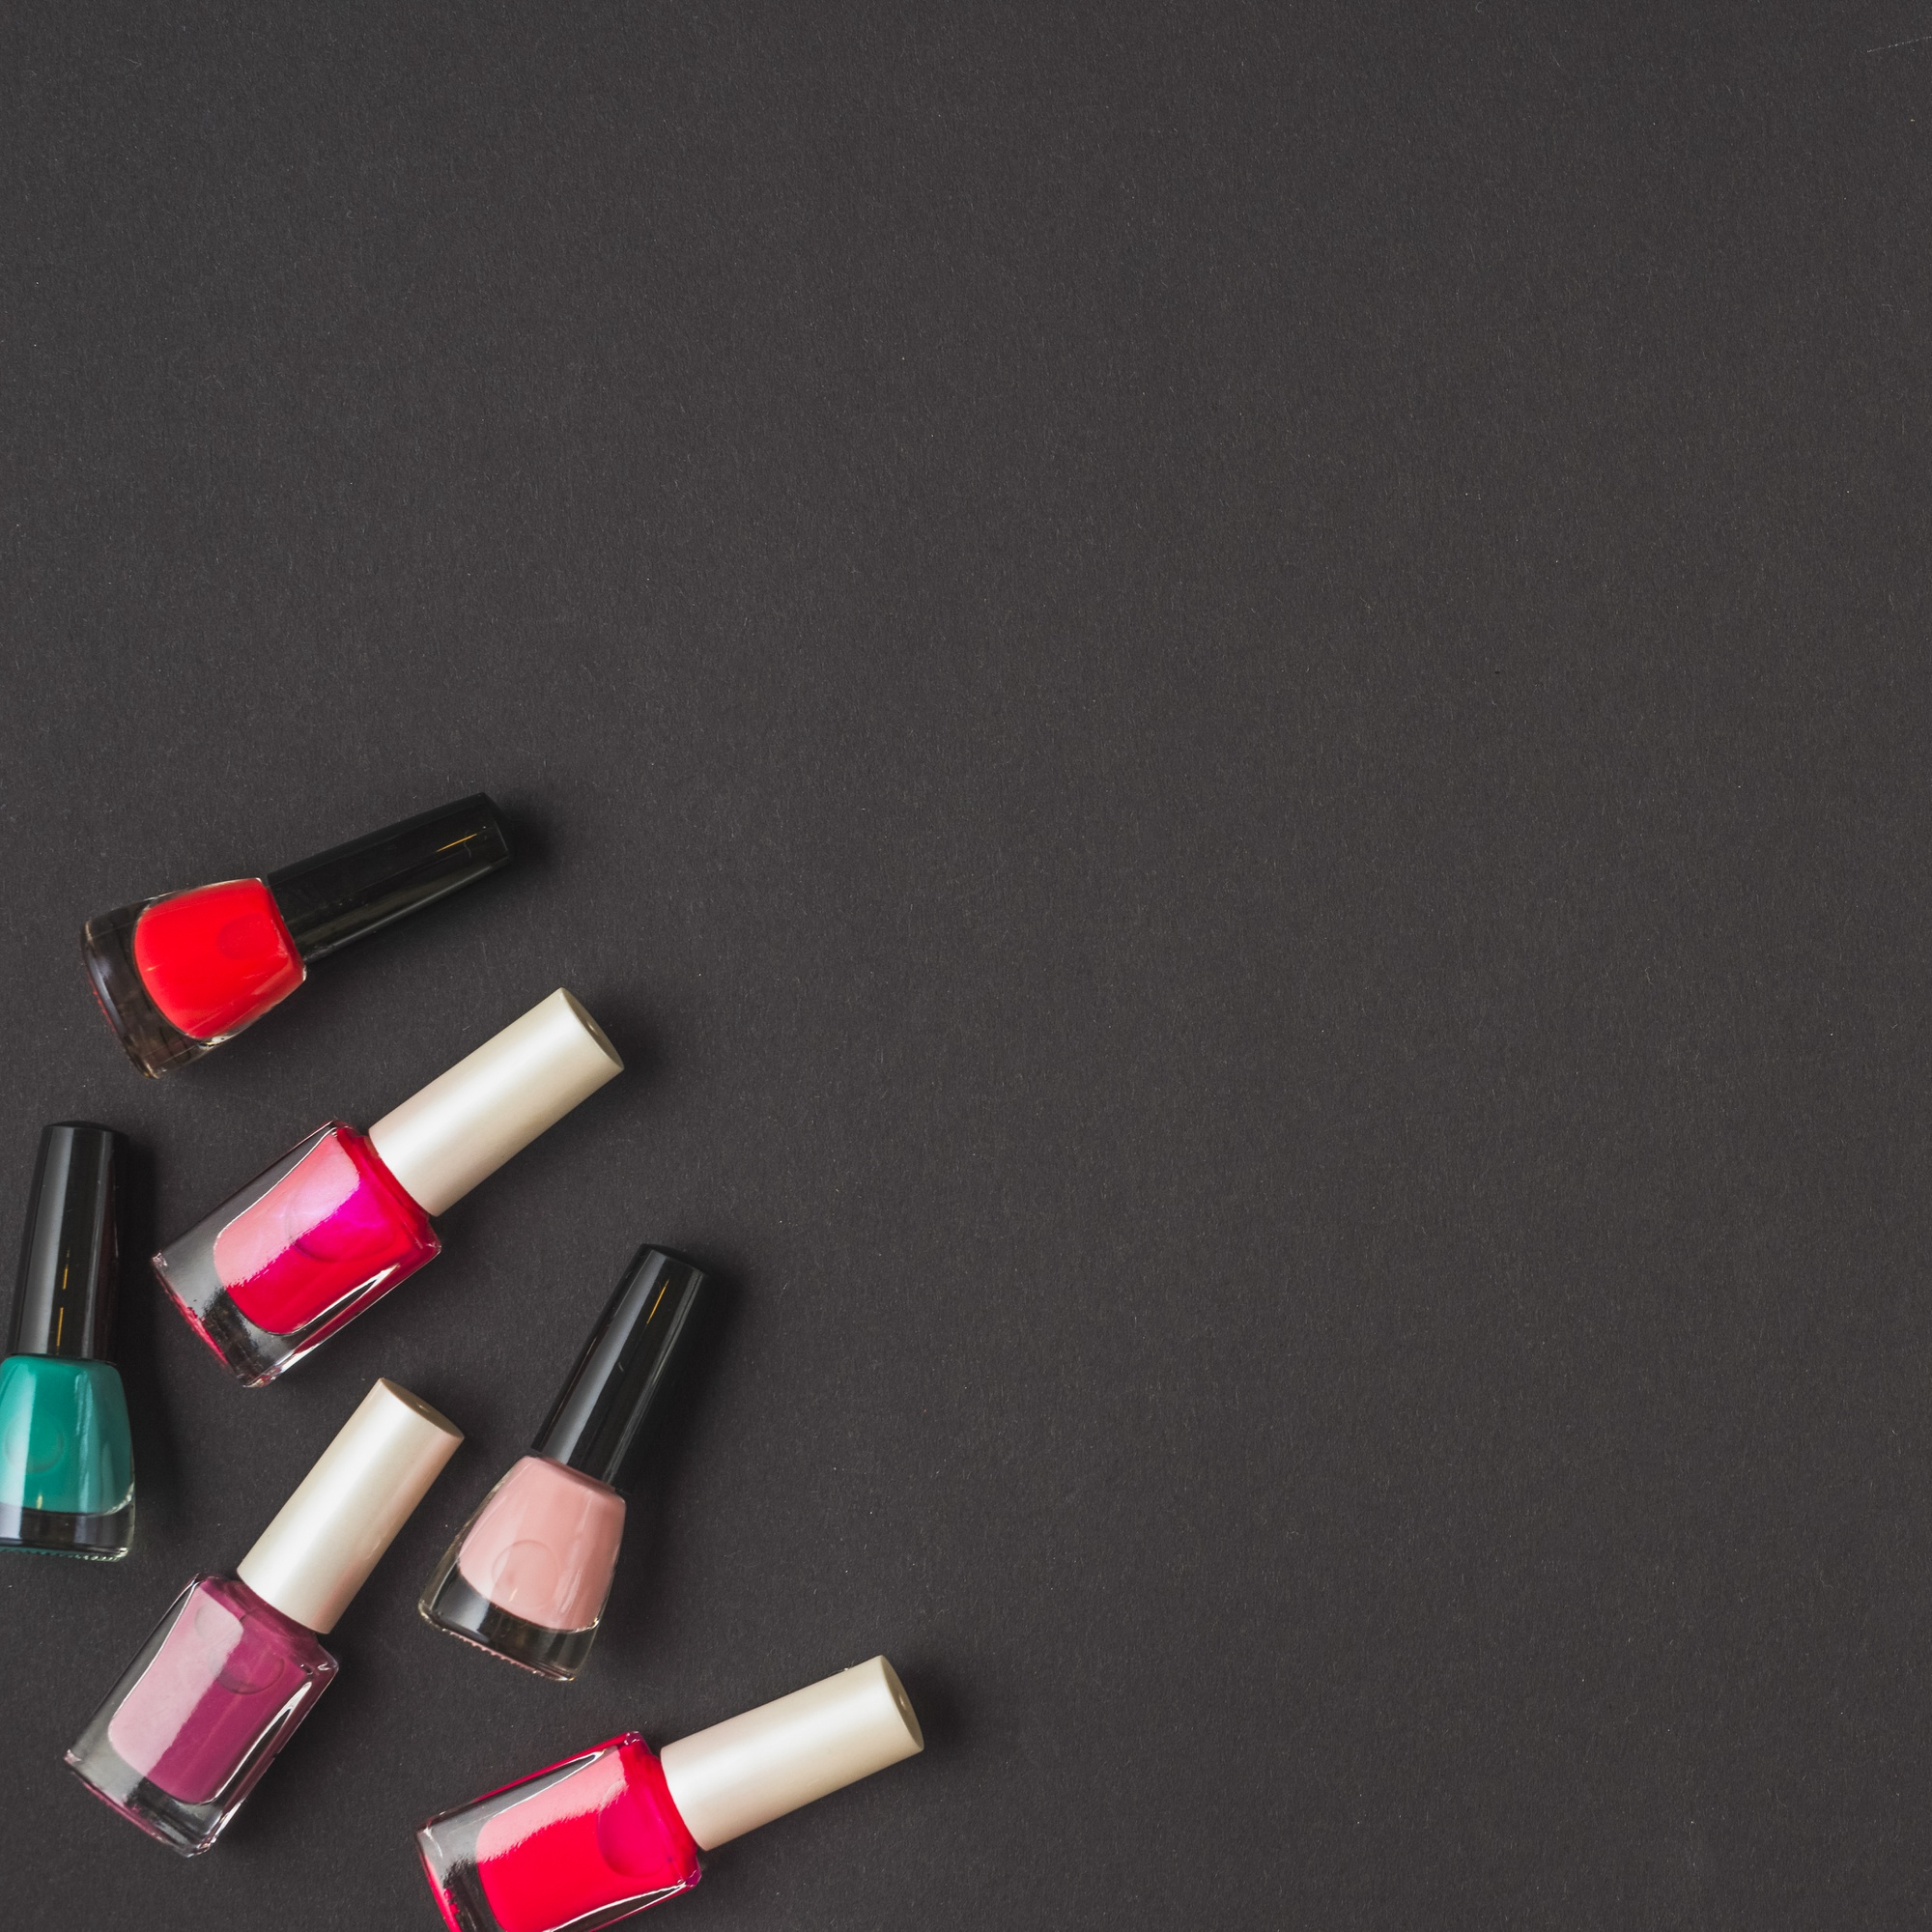 Overhead view of multi colored nail varnish bottles on black surface